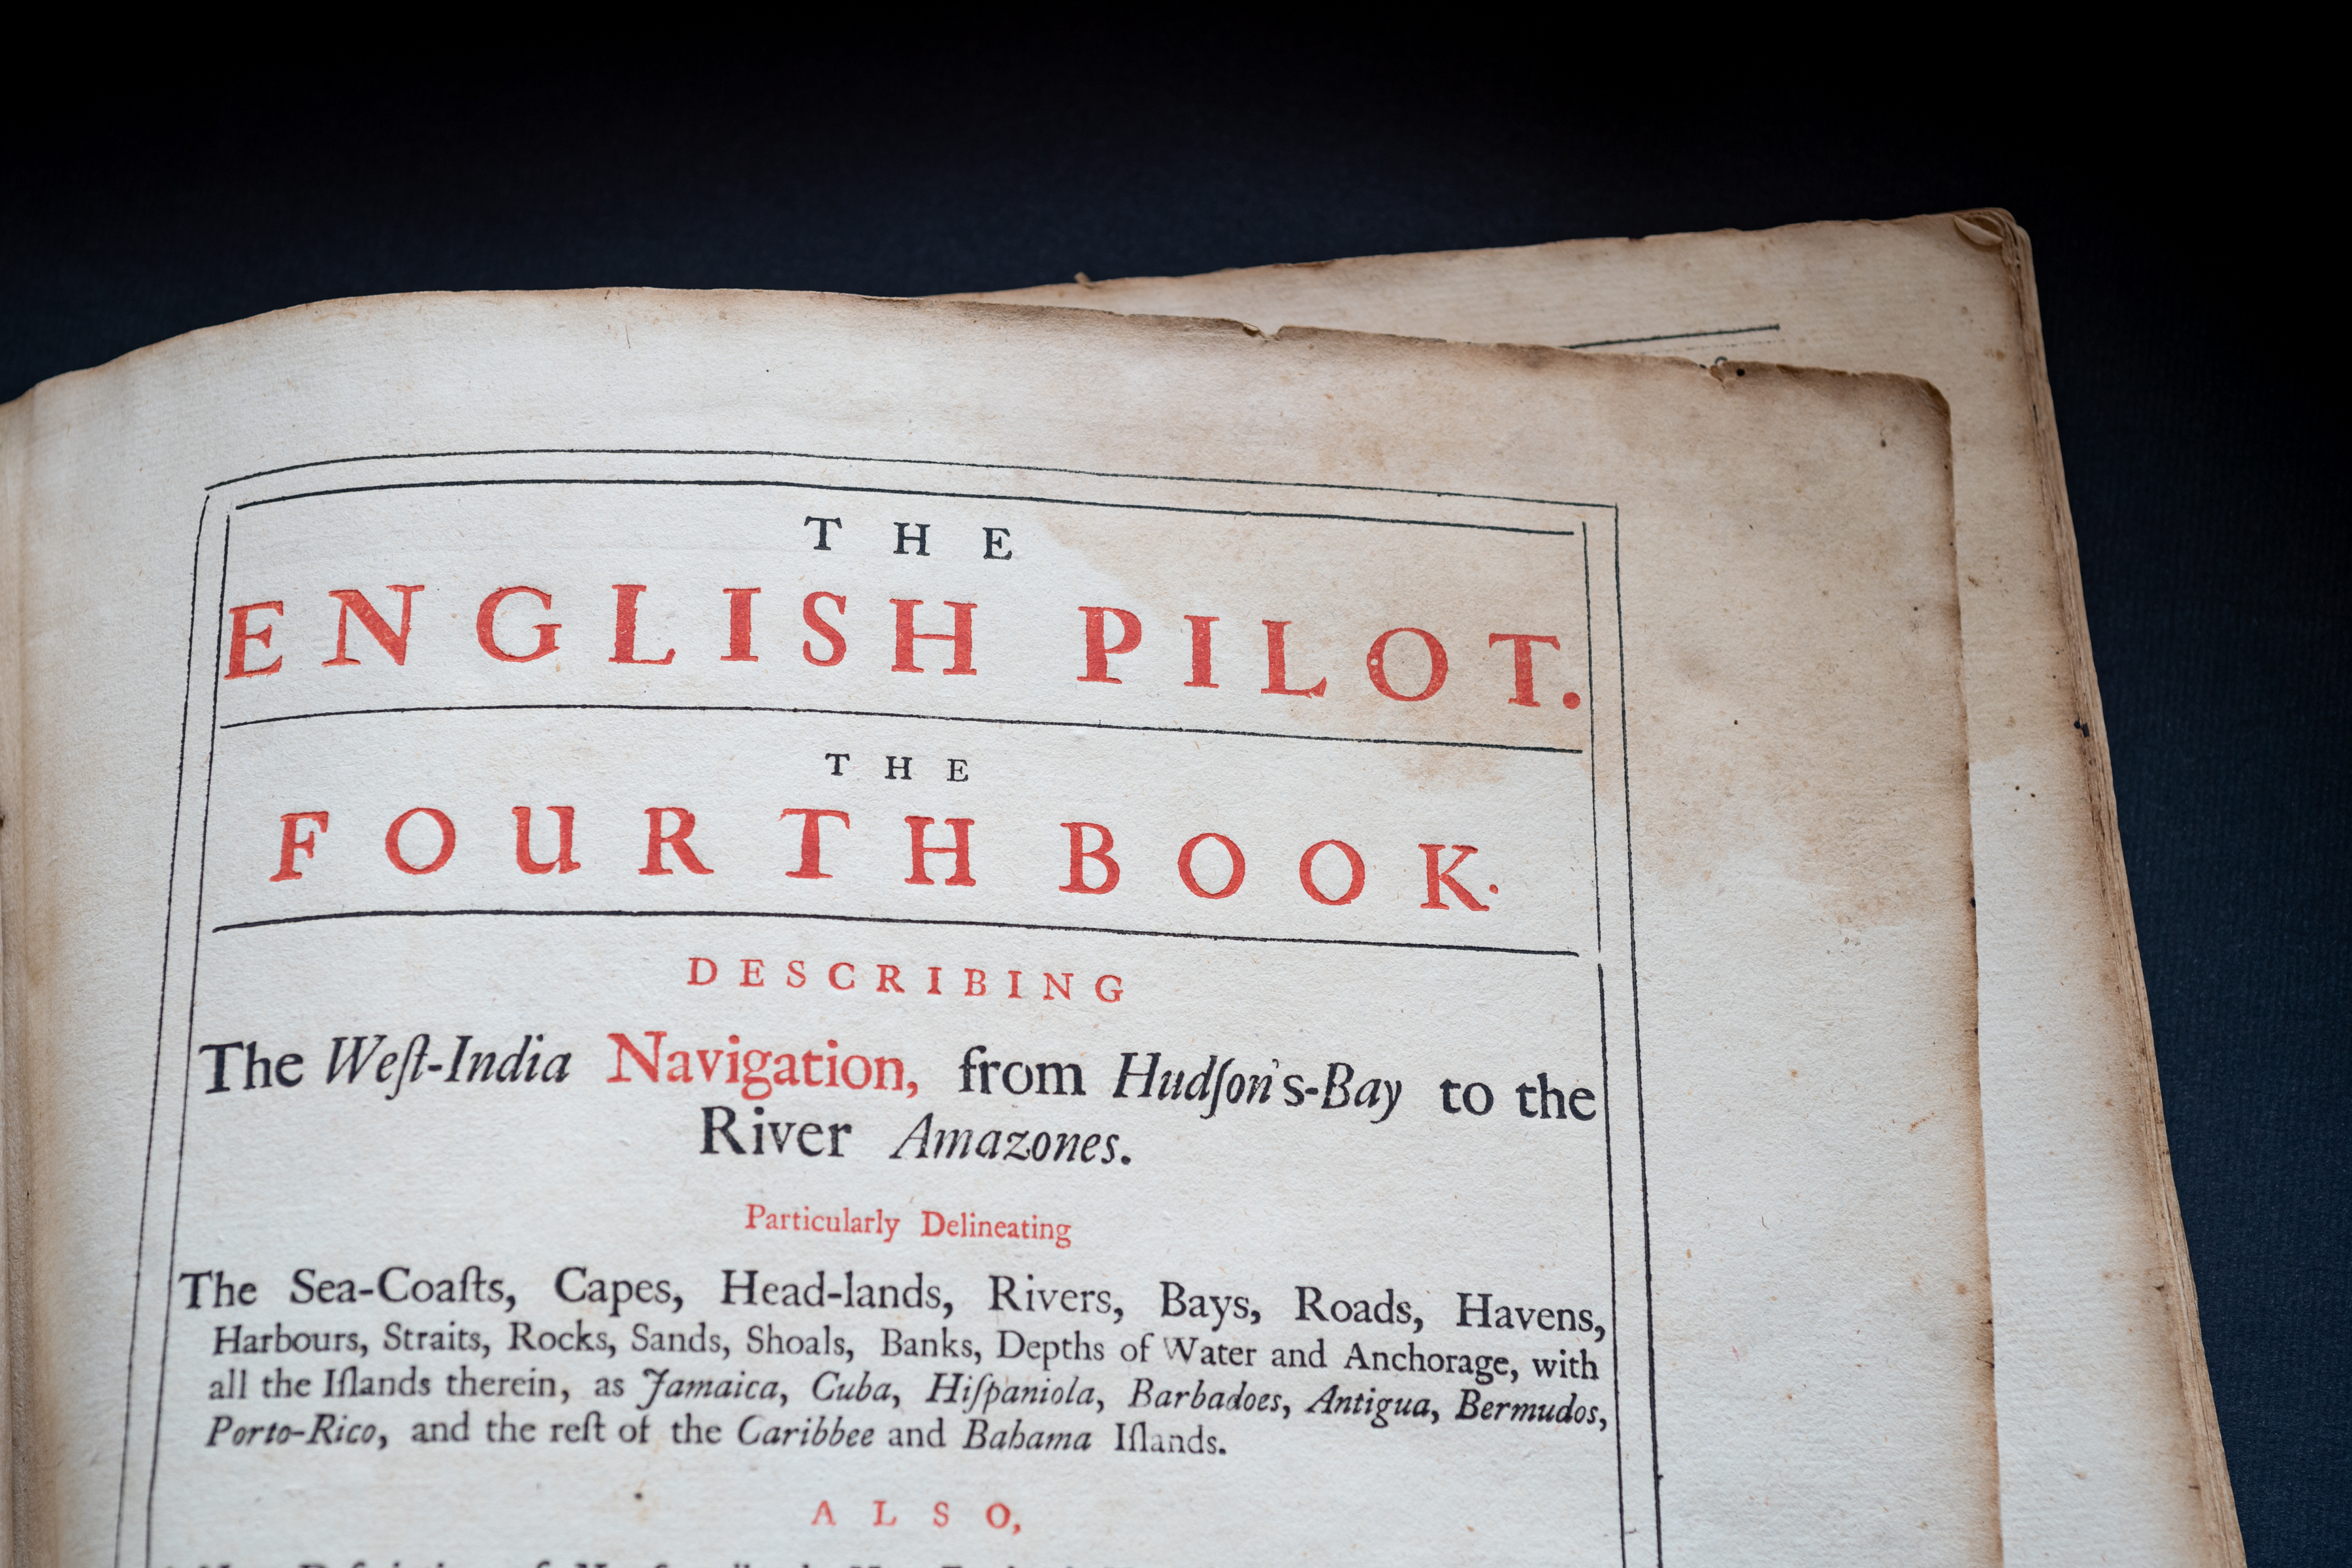 "Detail of a printed book shows title page with English text ""The English Pilot. The Fourth Book describing the West India Navigation, from Hudson's Bay to the River Amazones"" in red ink."